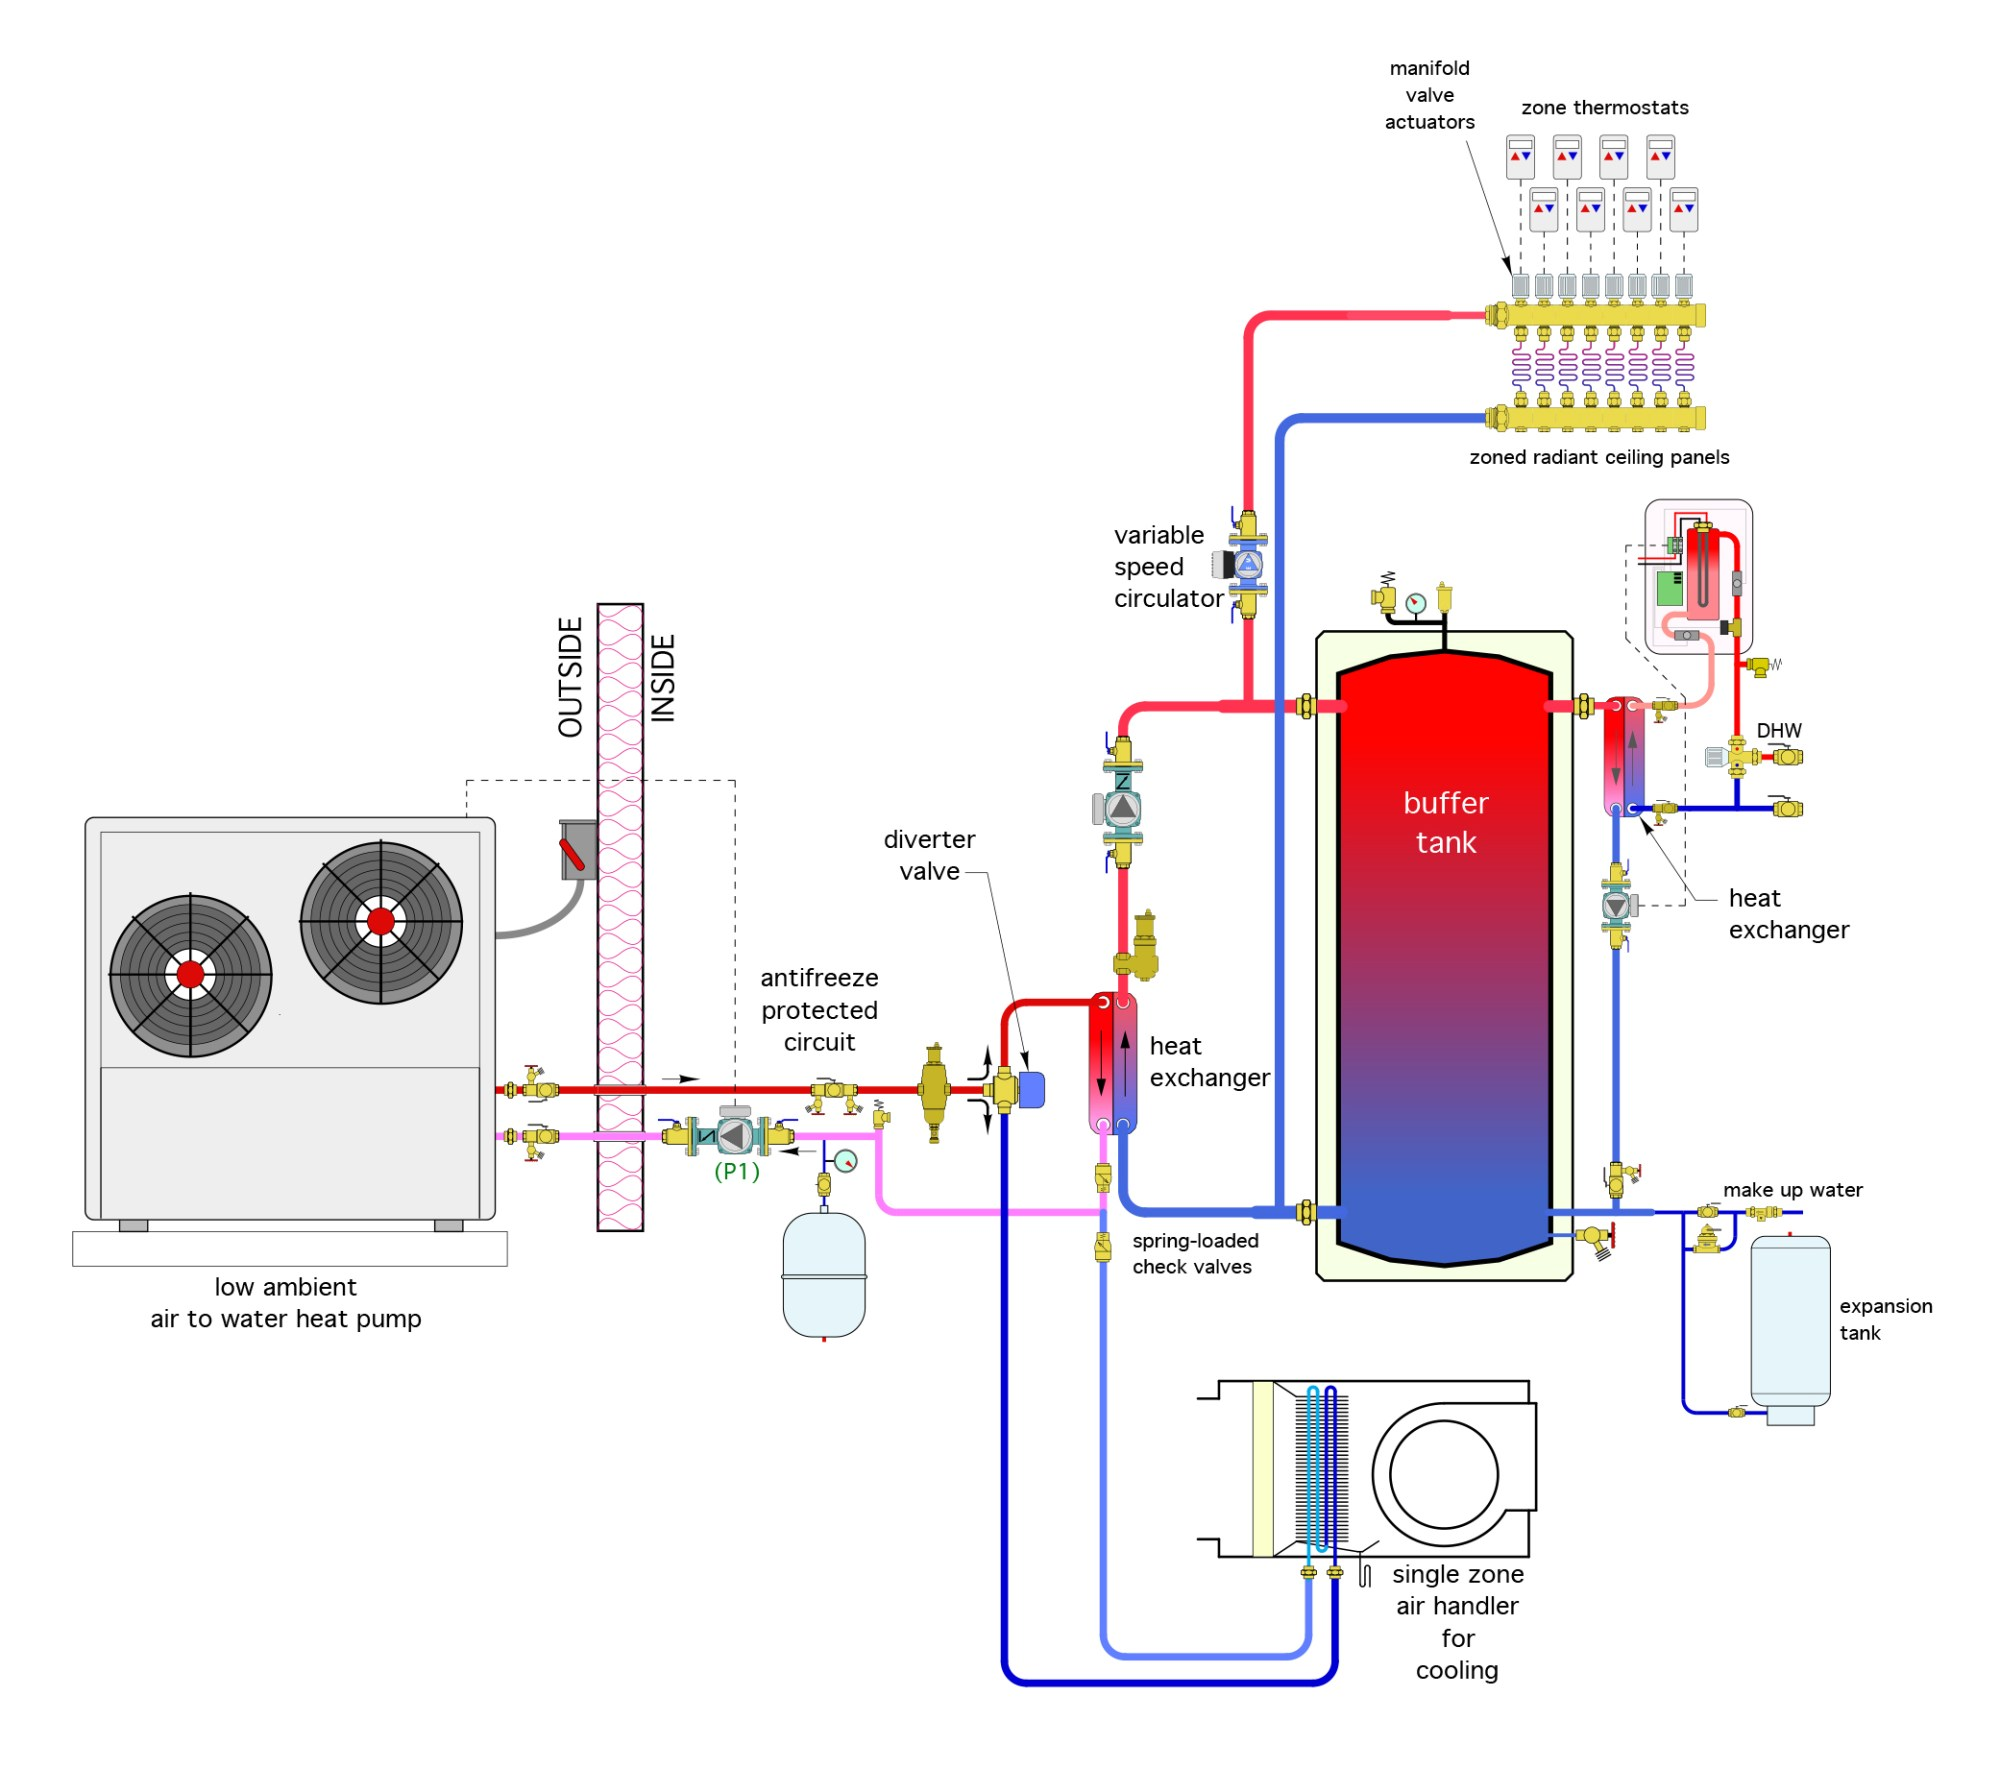 hight resolution of hydronic heating diagram wiring diagram home hydronic radiant heat diagram hydronic heating diagram